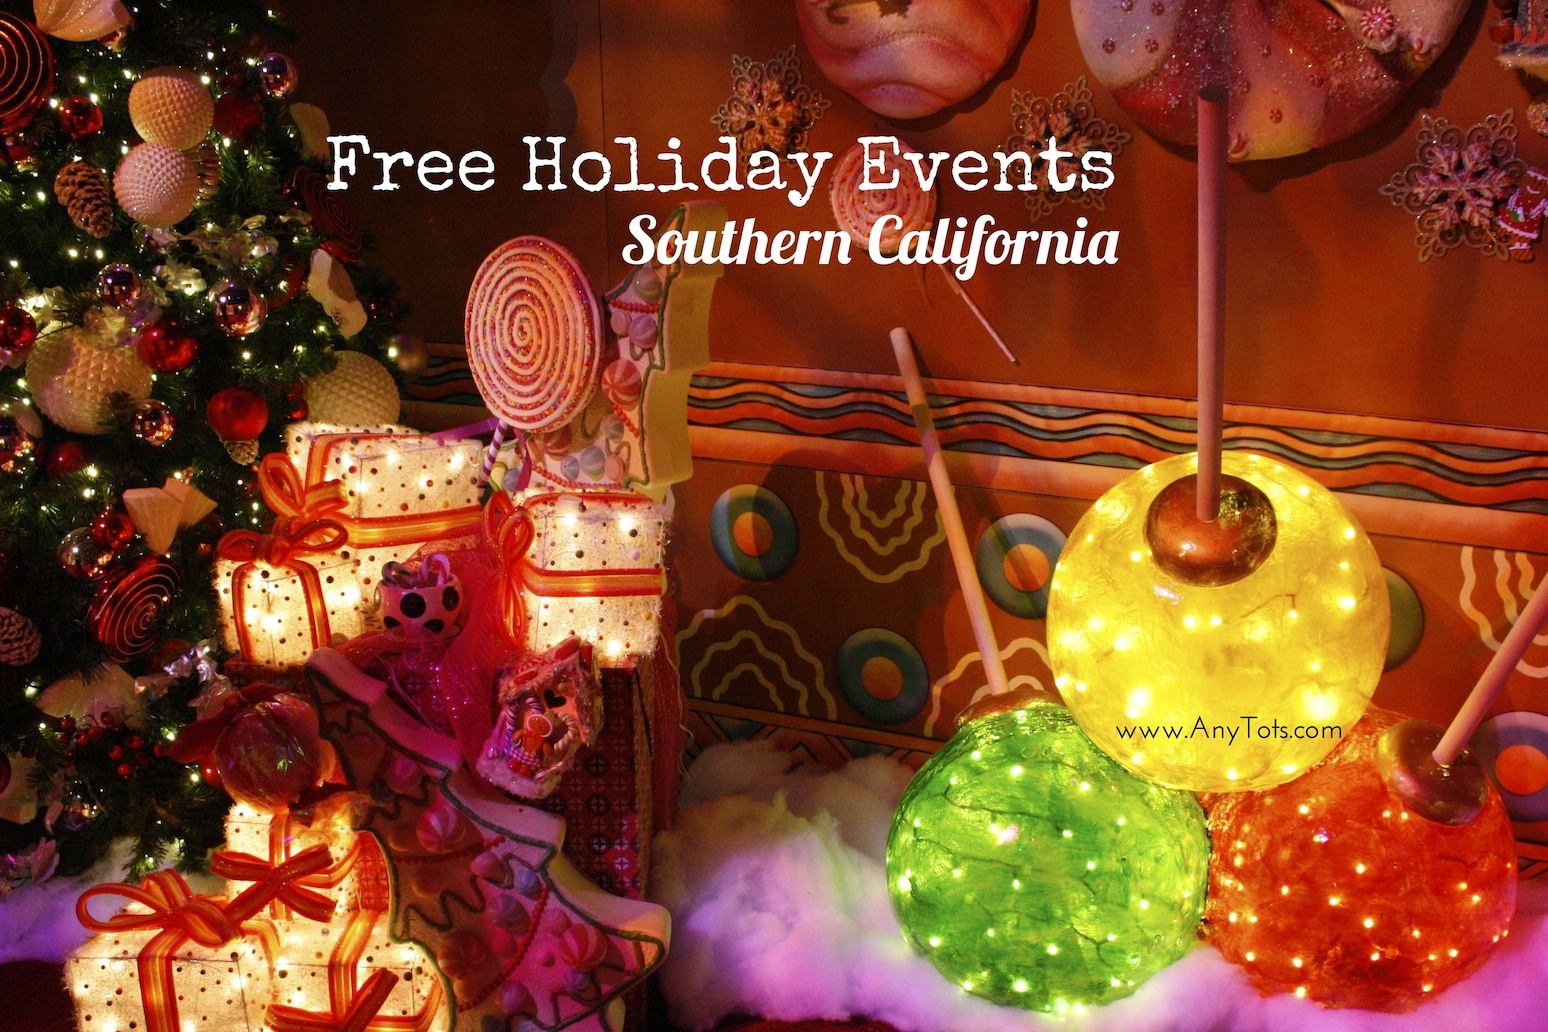 Holiday Events: Los Angeles and Orange County 2017 - Any Tots